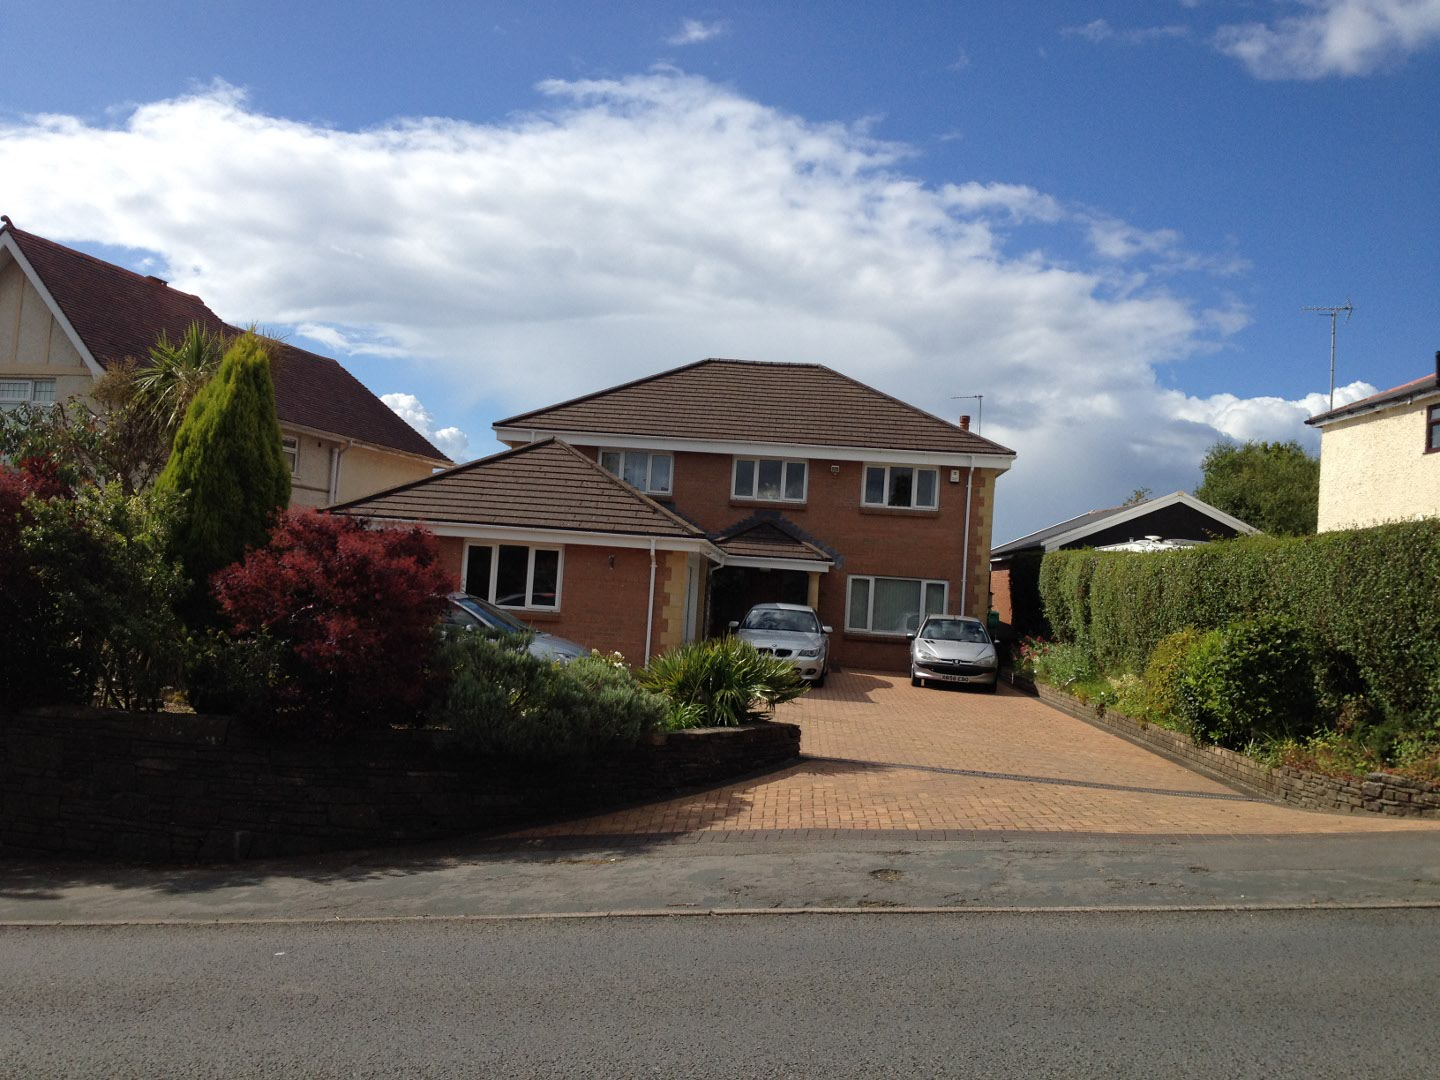 Gower Road,Swansea, SA2